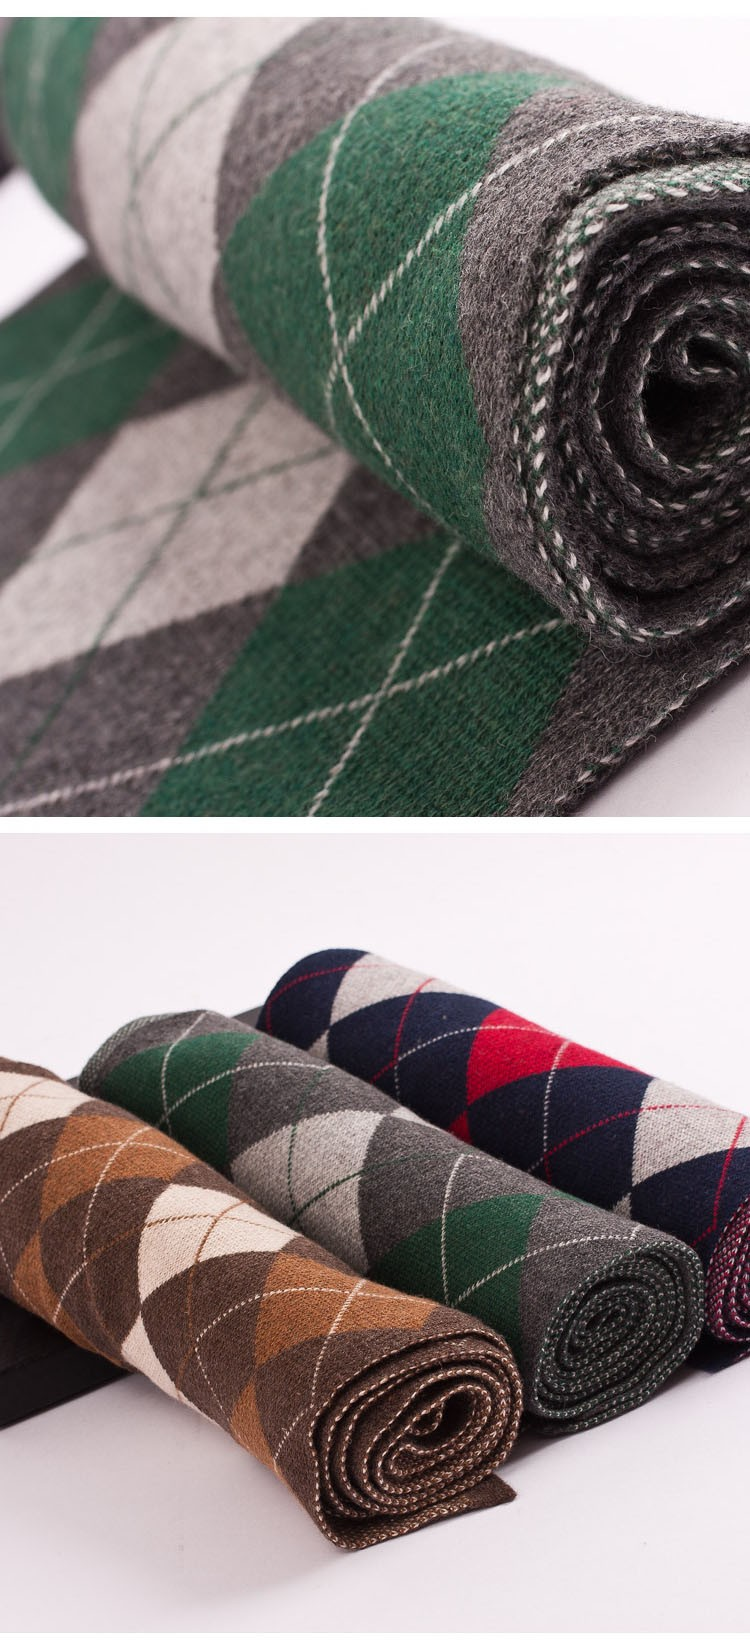 Hot  from india winter luxury Brand Big Size plaid scarf Men Long Neck Warm Cashmere Scarves Bufanda Wool scarf Knit Thicker